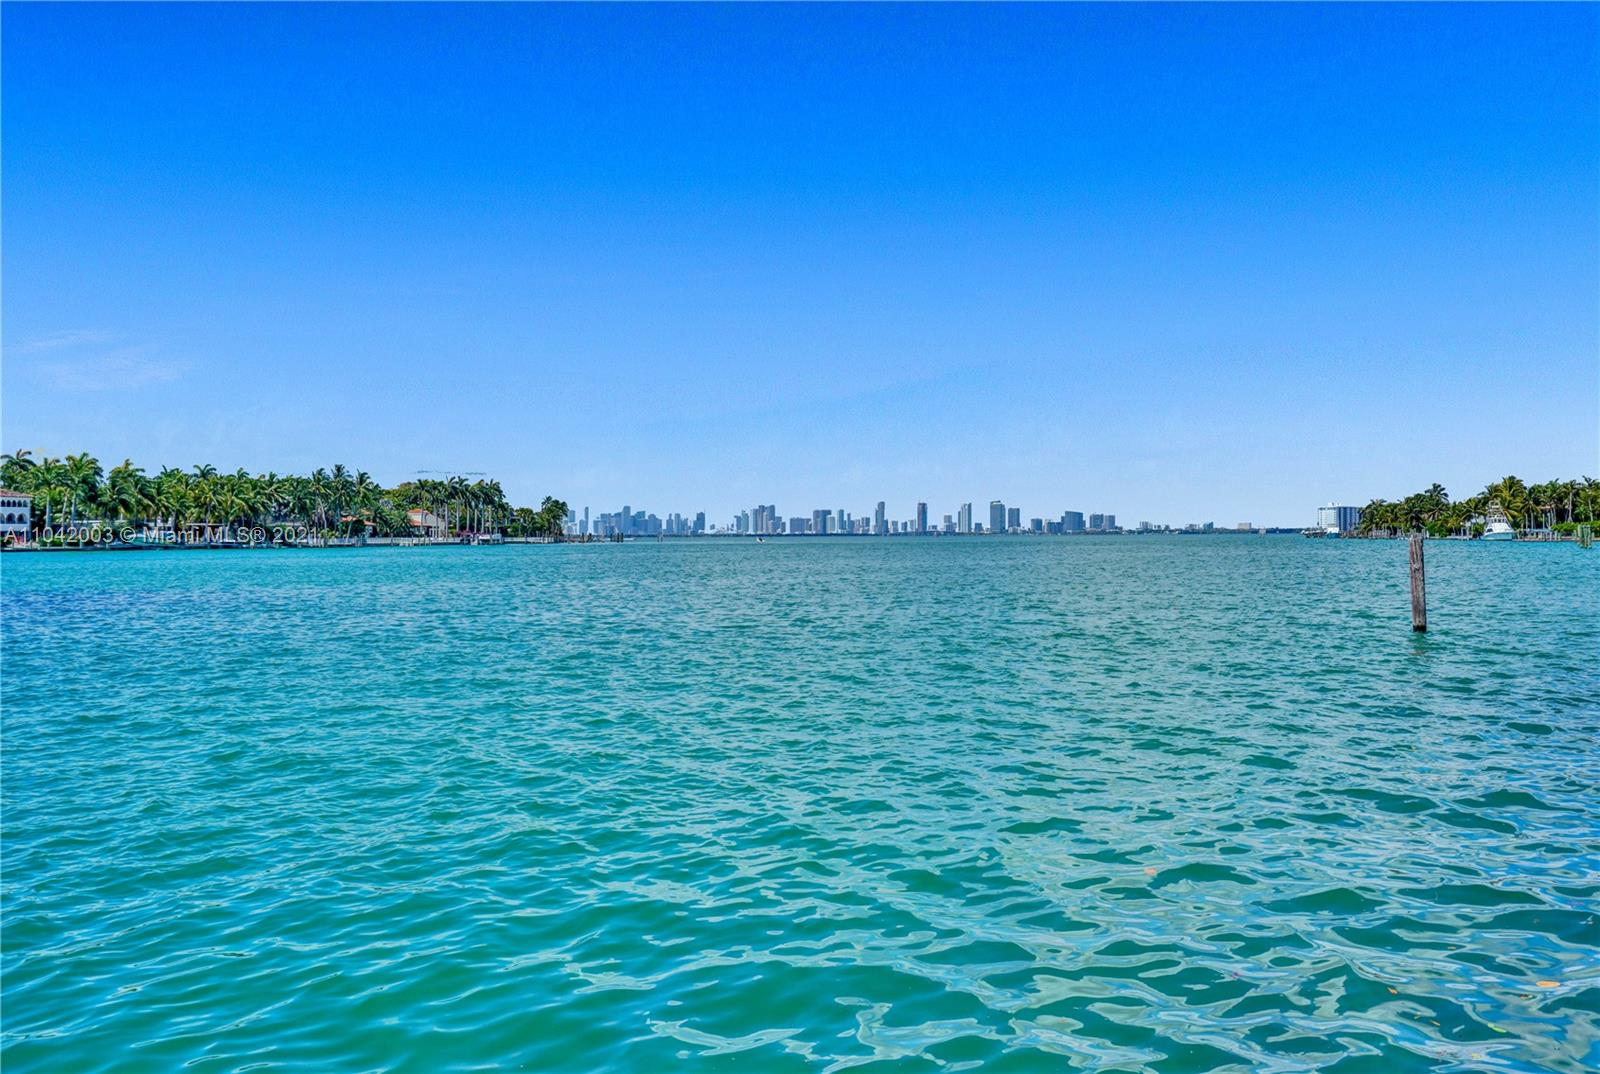 A Boat Lover's Dream House. Amazing Opportunity to own a waterfront home with one of a kind oversized boat dock right in your backyard. Completely updated in prestigious Normandy Isle. Enjoy a fabulous, updated kitchen and brand-new luxurious bathrooms. This spacious two-story 4 Bedroom 4 Bathroom 2812 sq ft home is perfect for entertaining. Sit by the fireplace in your expansive living room with two large double doors leading to the huge covered outdoor patio overlooking the impressive views over Biscayne Bay. Surrounding the home is new luscious landscaping creating your own sanctuary.